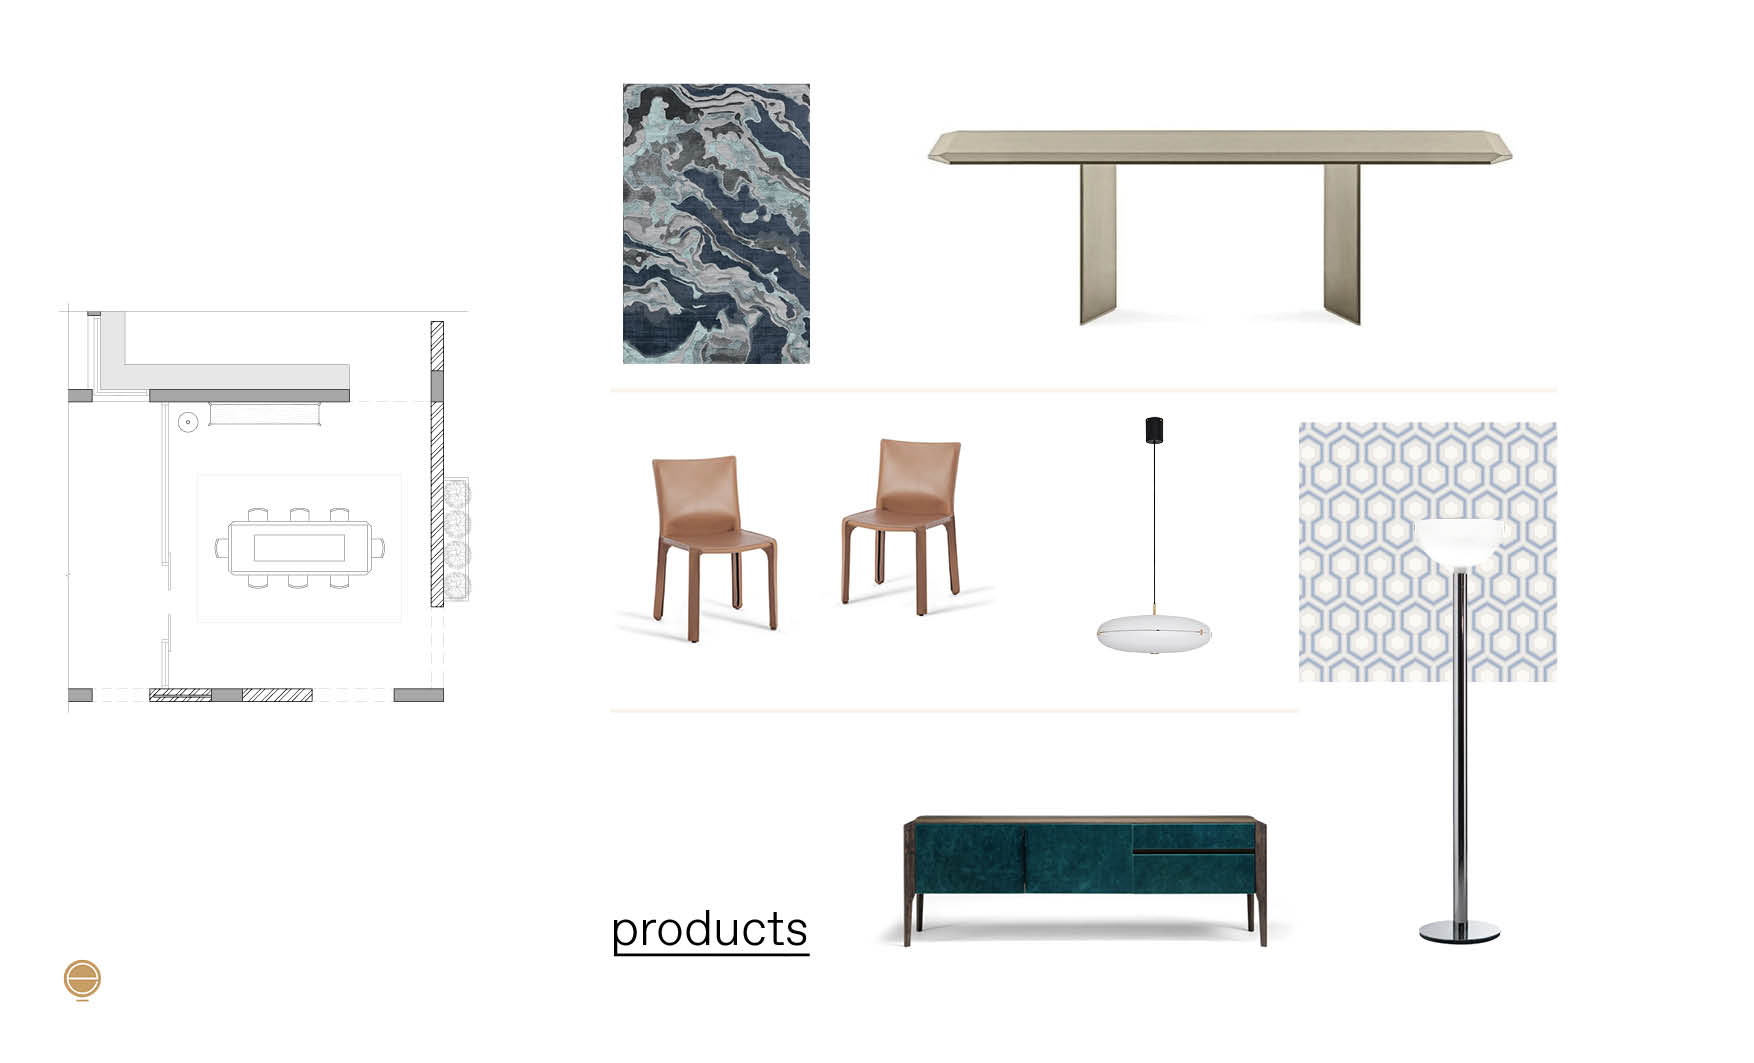 products moodboard of luxury dining room furniture made by Esperiri